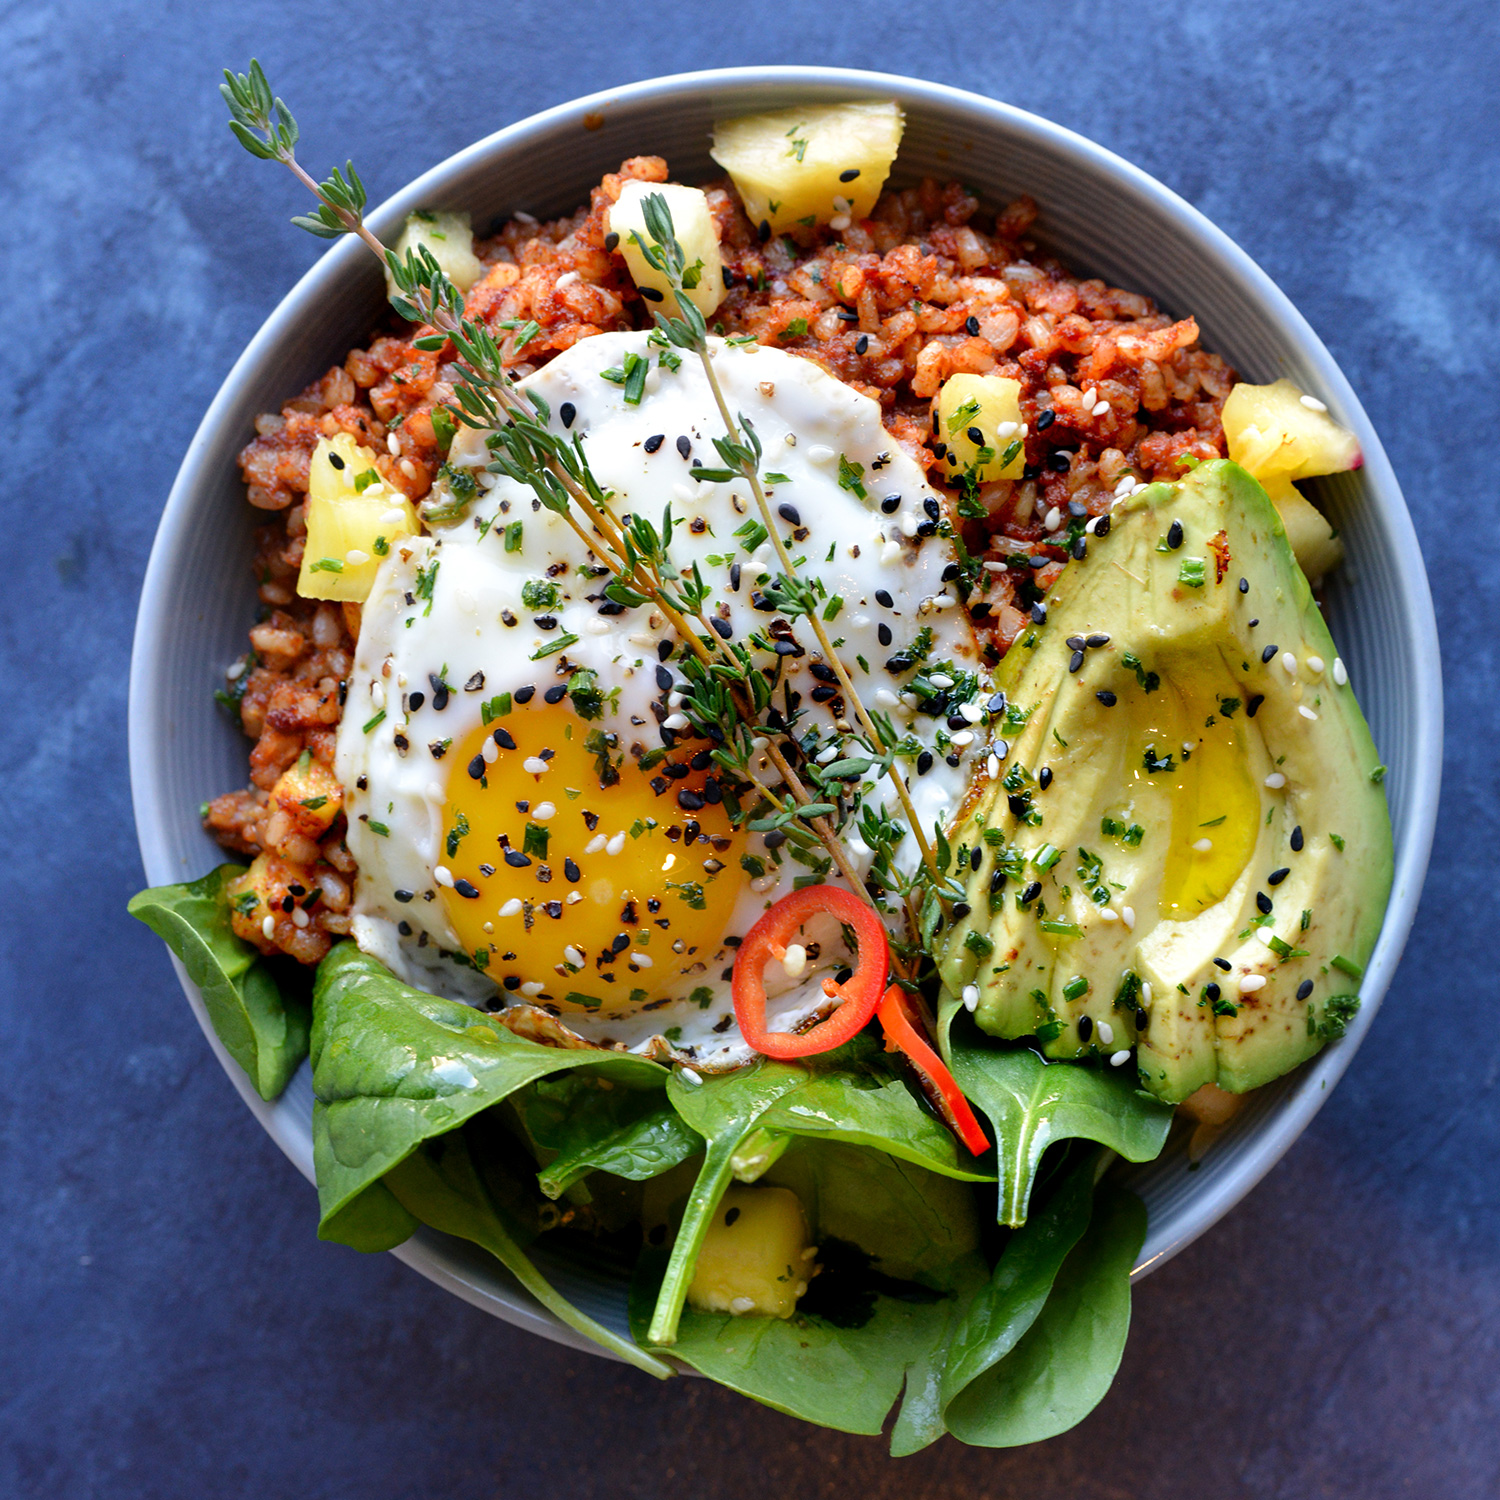 HAWAIIAN BOWL - Pineapple, Chorizo, brown rice, spinach, cilantro, topped with a sunny side egg and avocado